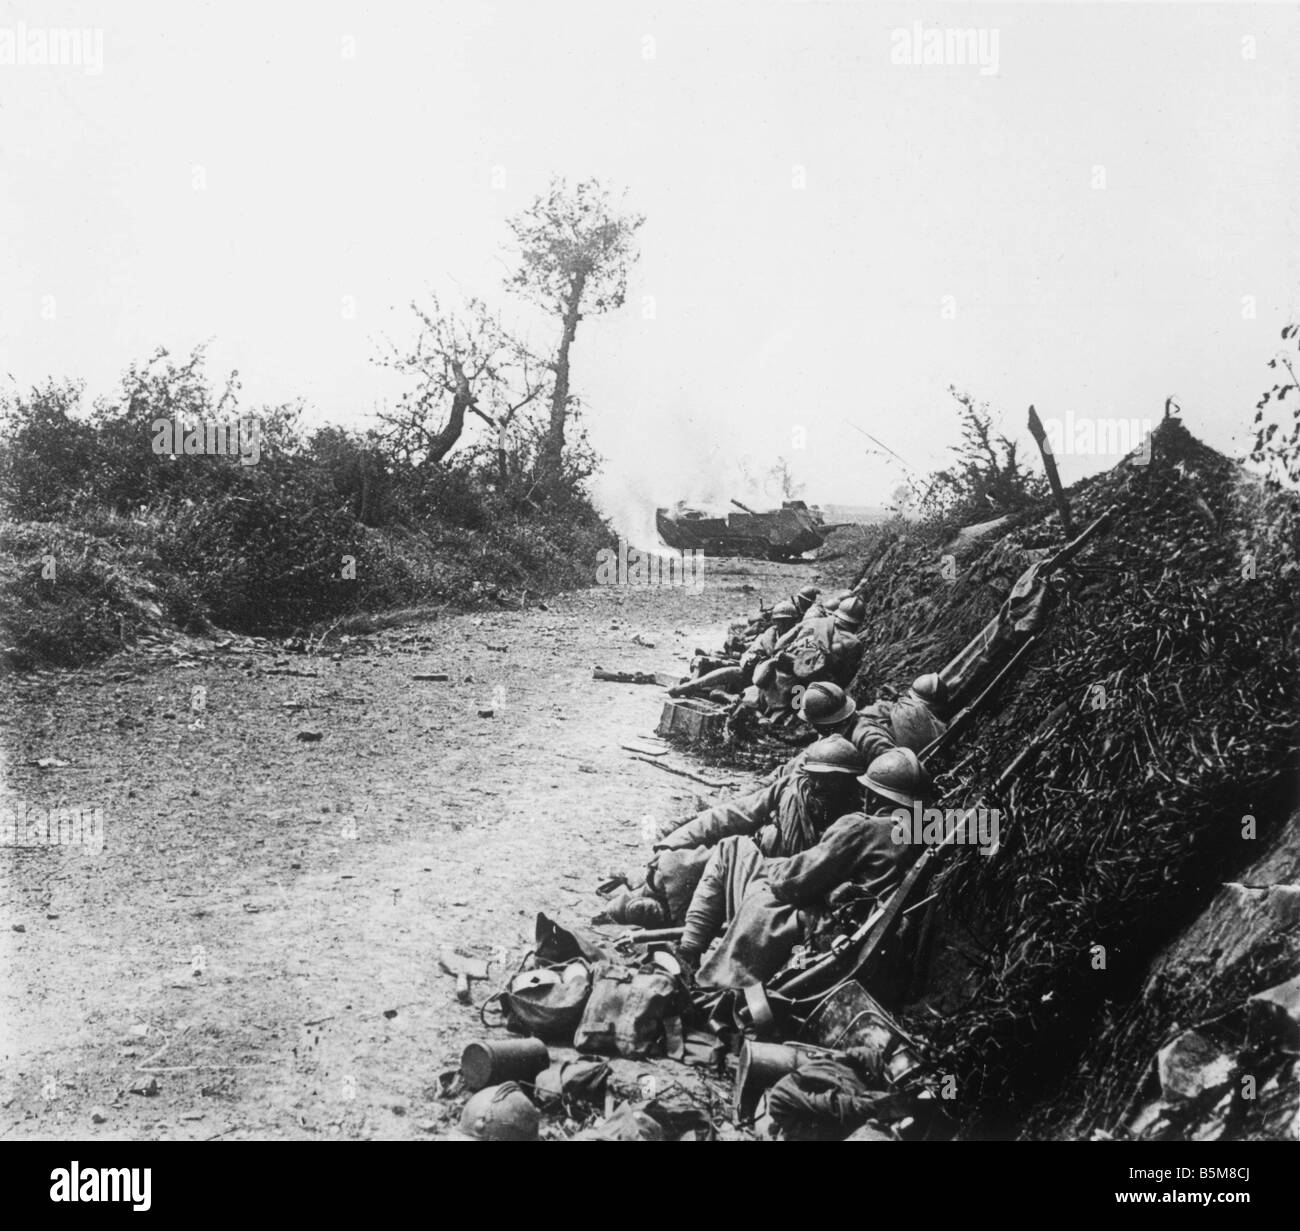 2 G55 F1 1916 20 E WWI French Soldiers taking Cover History WWI France French Soldiers taking Cover Capture of Courcelles Stock Photo